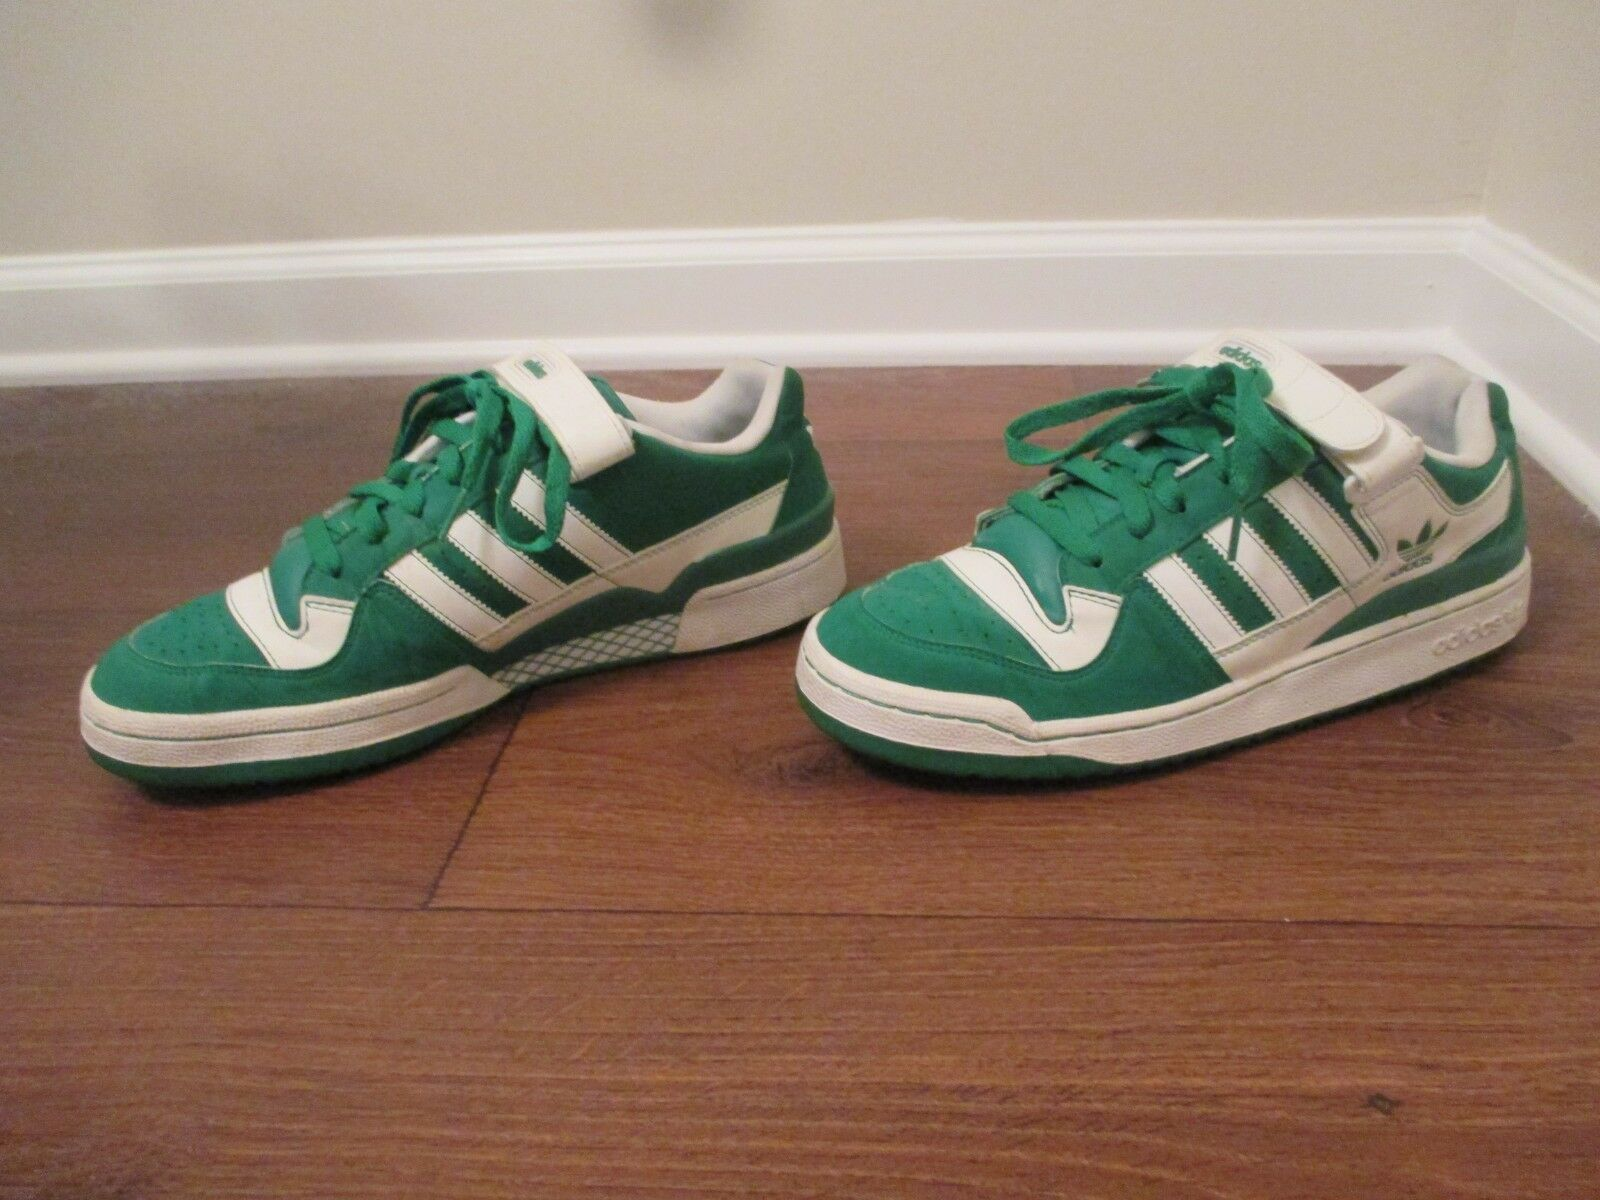 Used Worn Size 10.5 Adidas Forum Low shoes Green White